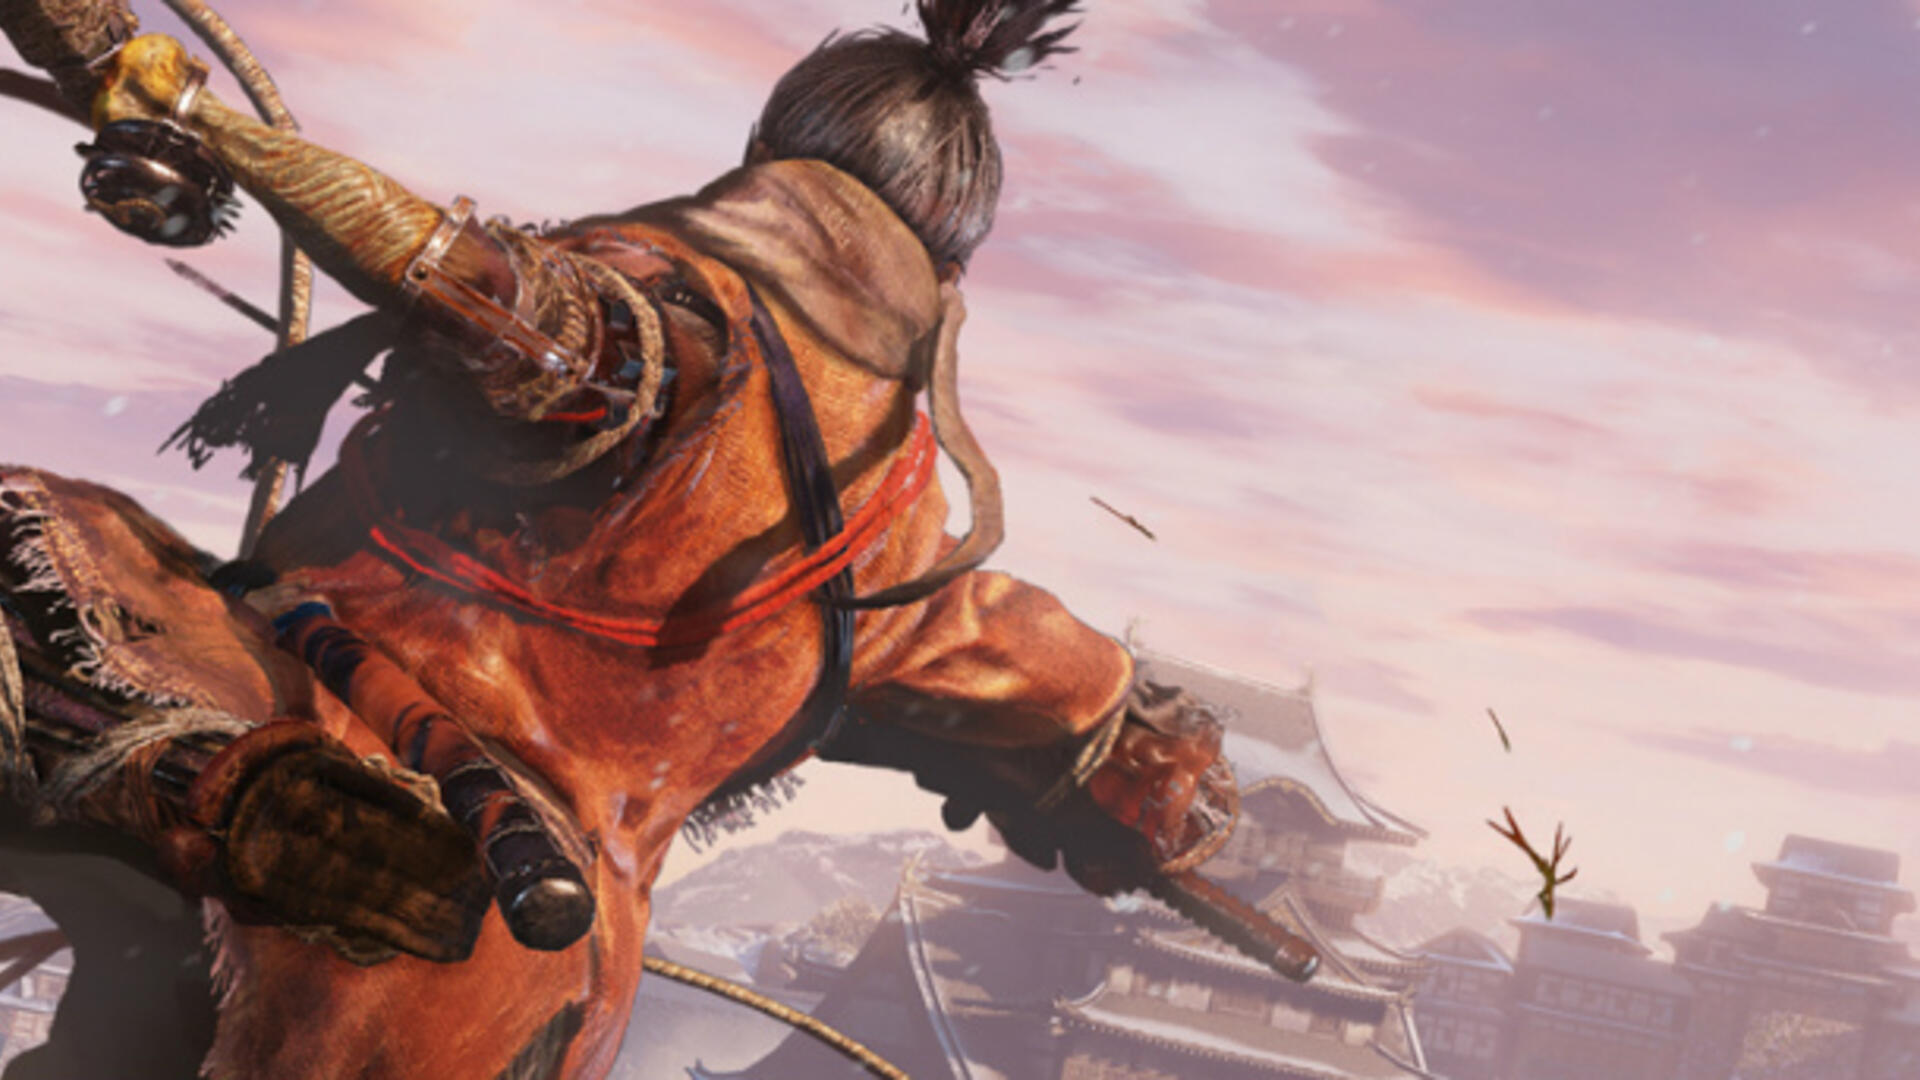 Sekiro: Shadows Die Twice Finds Inspiration in FromSoftware's Tenchu